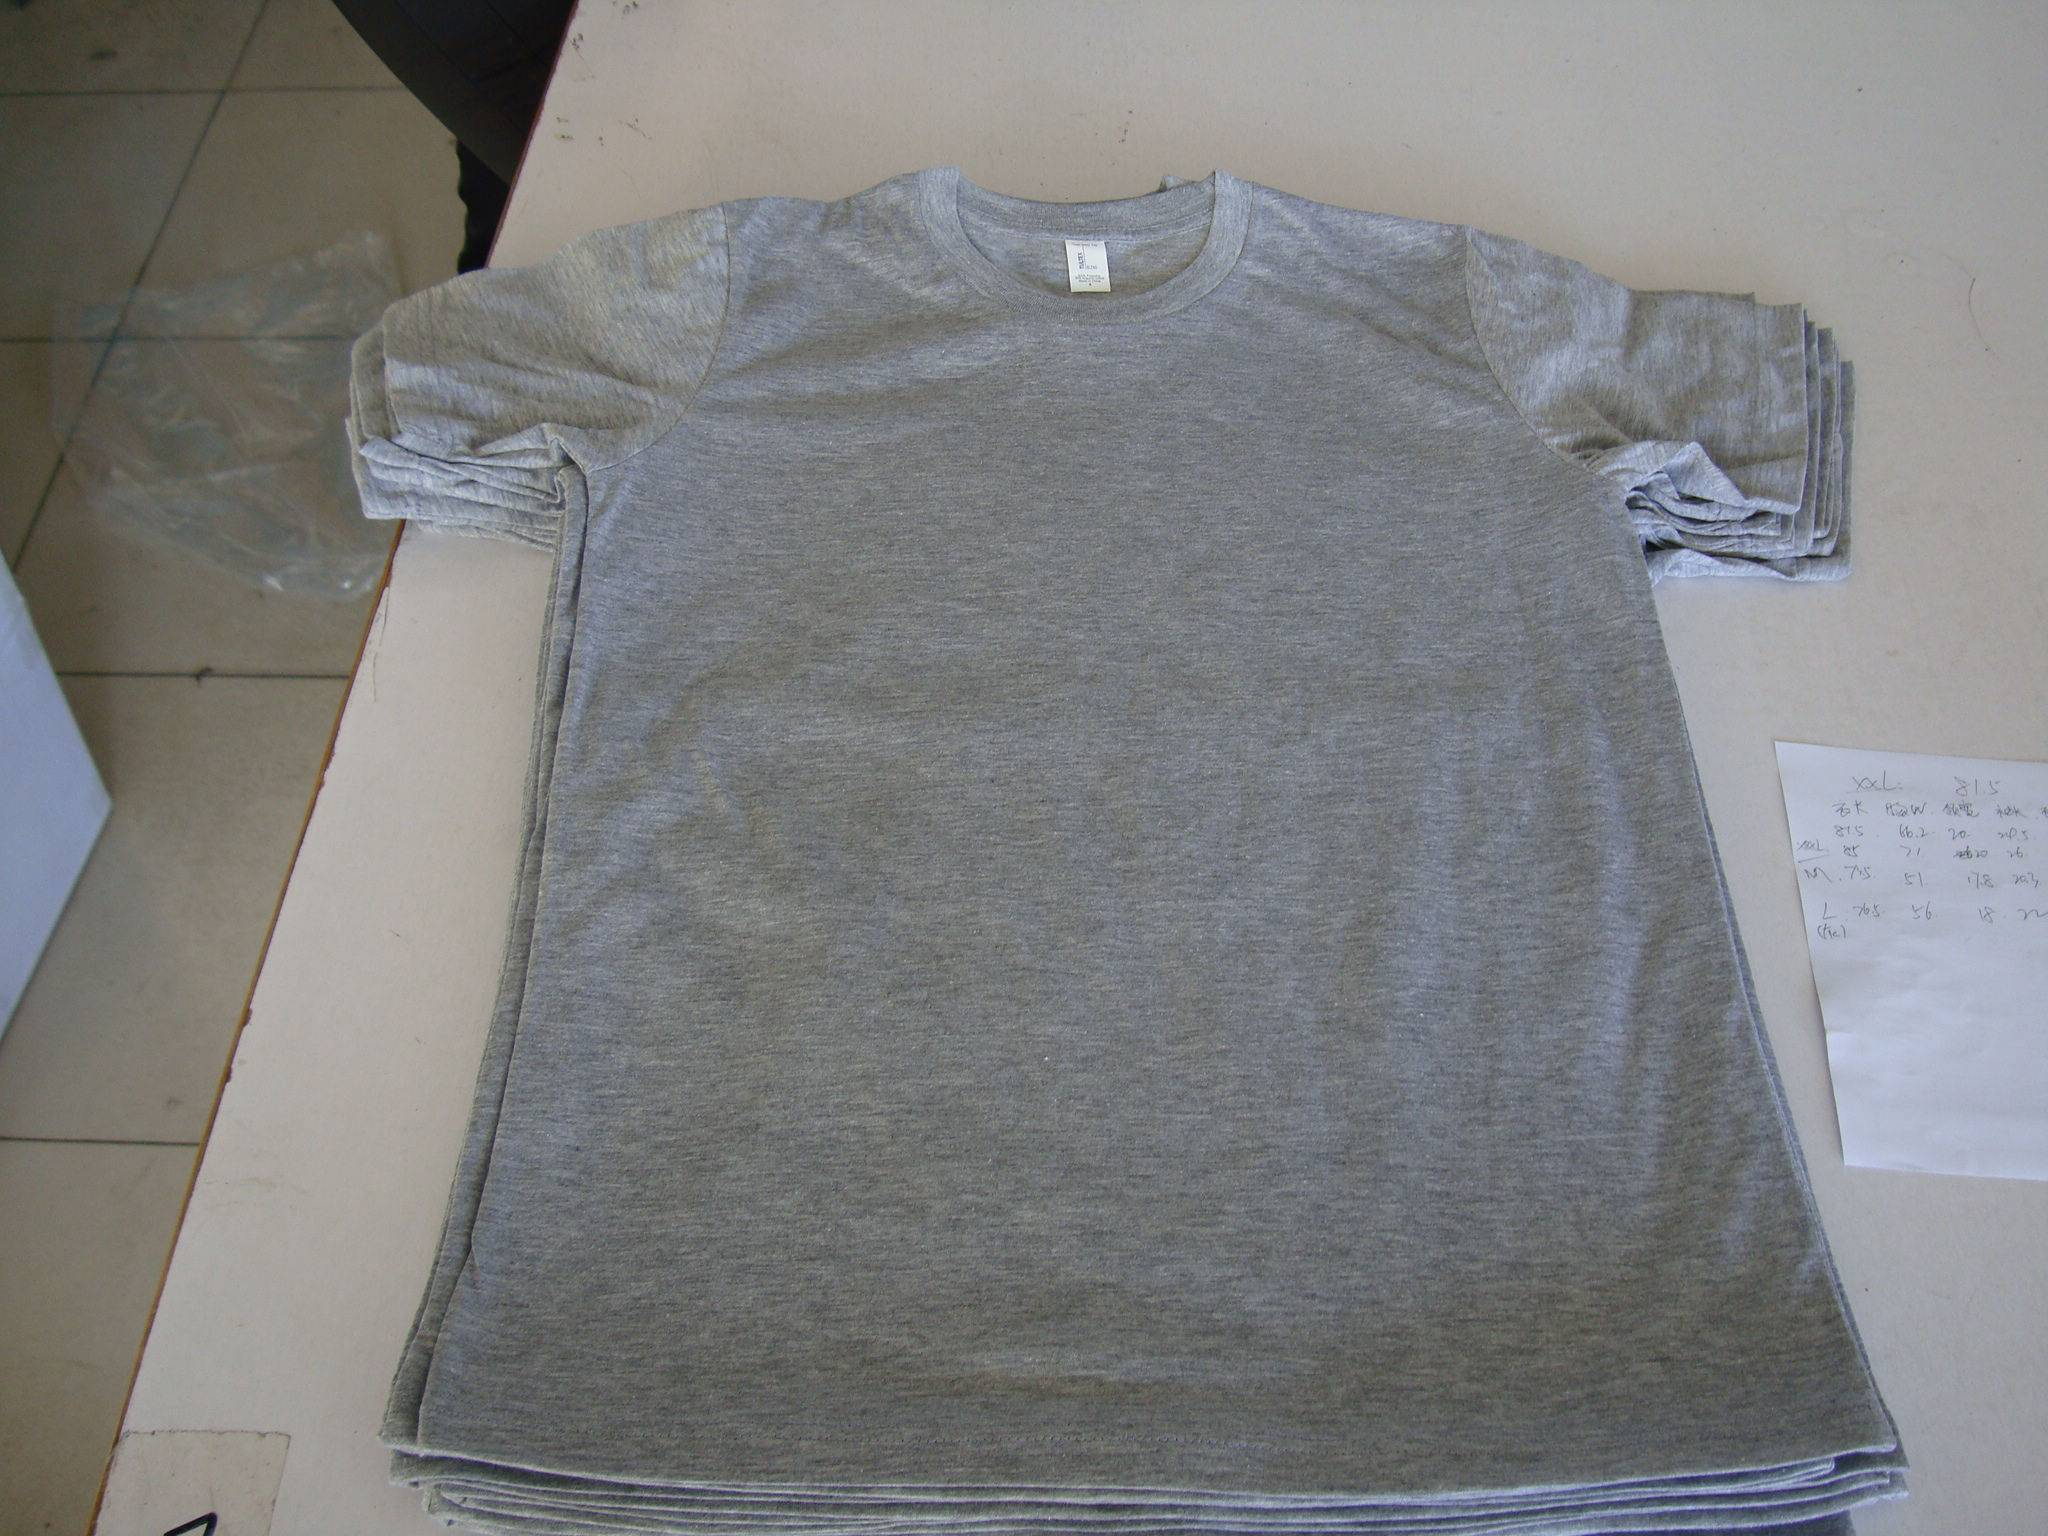 clothing product inspection service